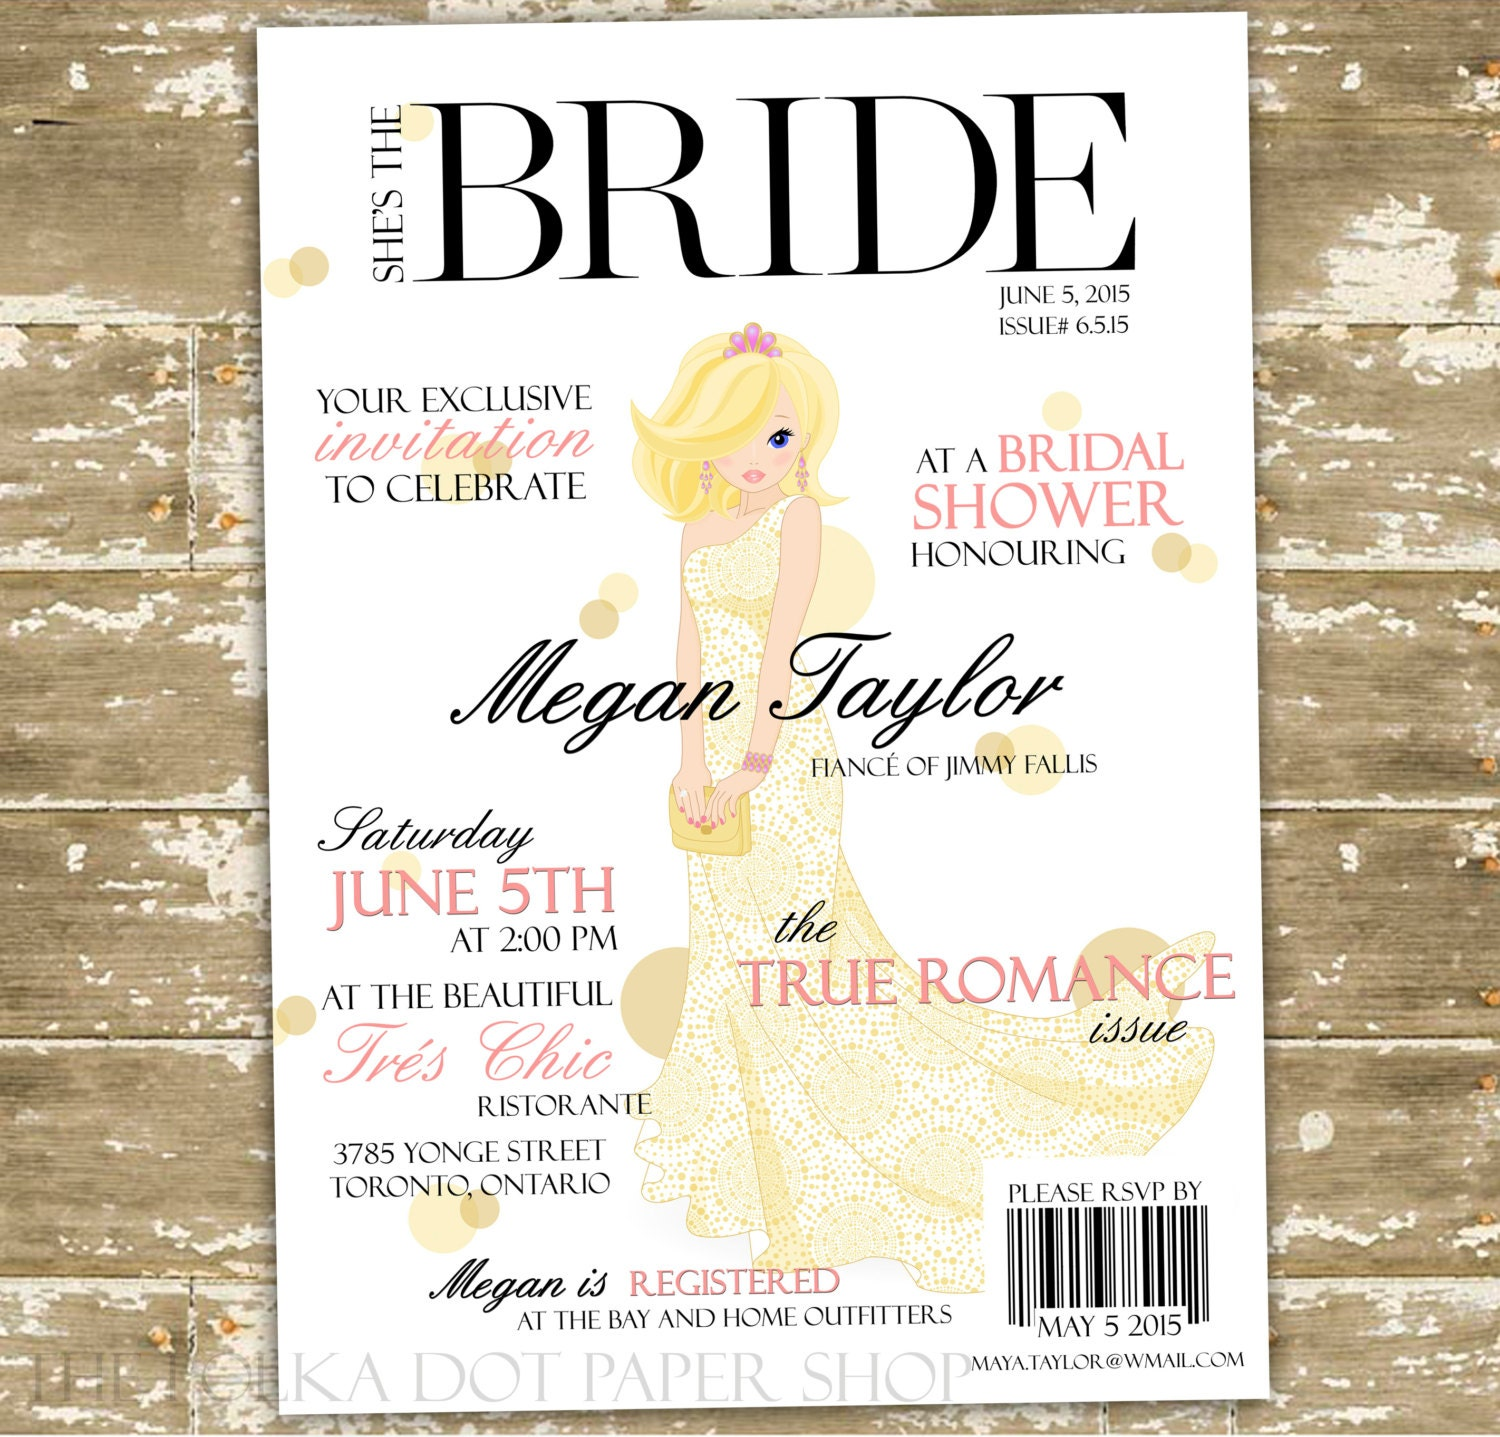 diy bridal shower invitation print at home high fashion On how to make bridal shower invitations at home